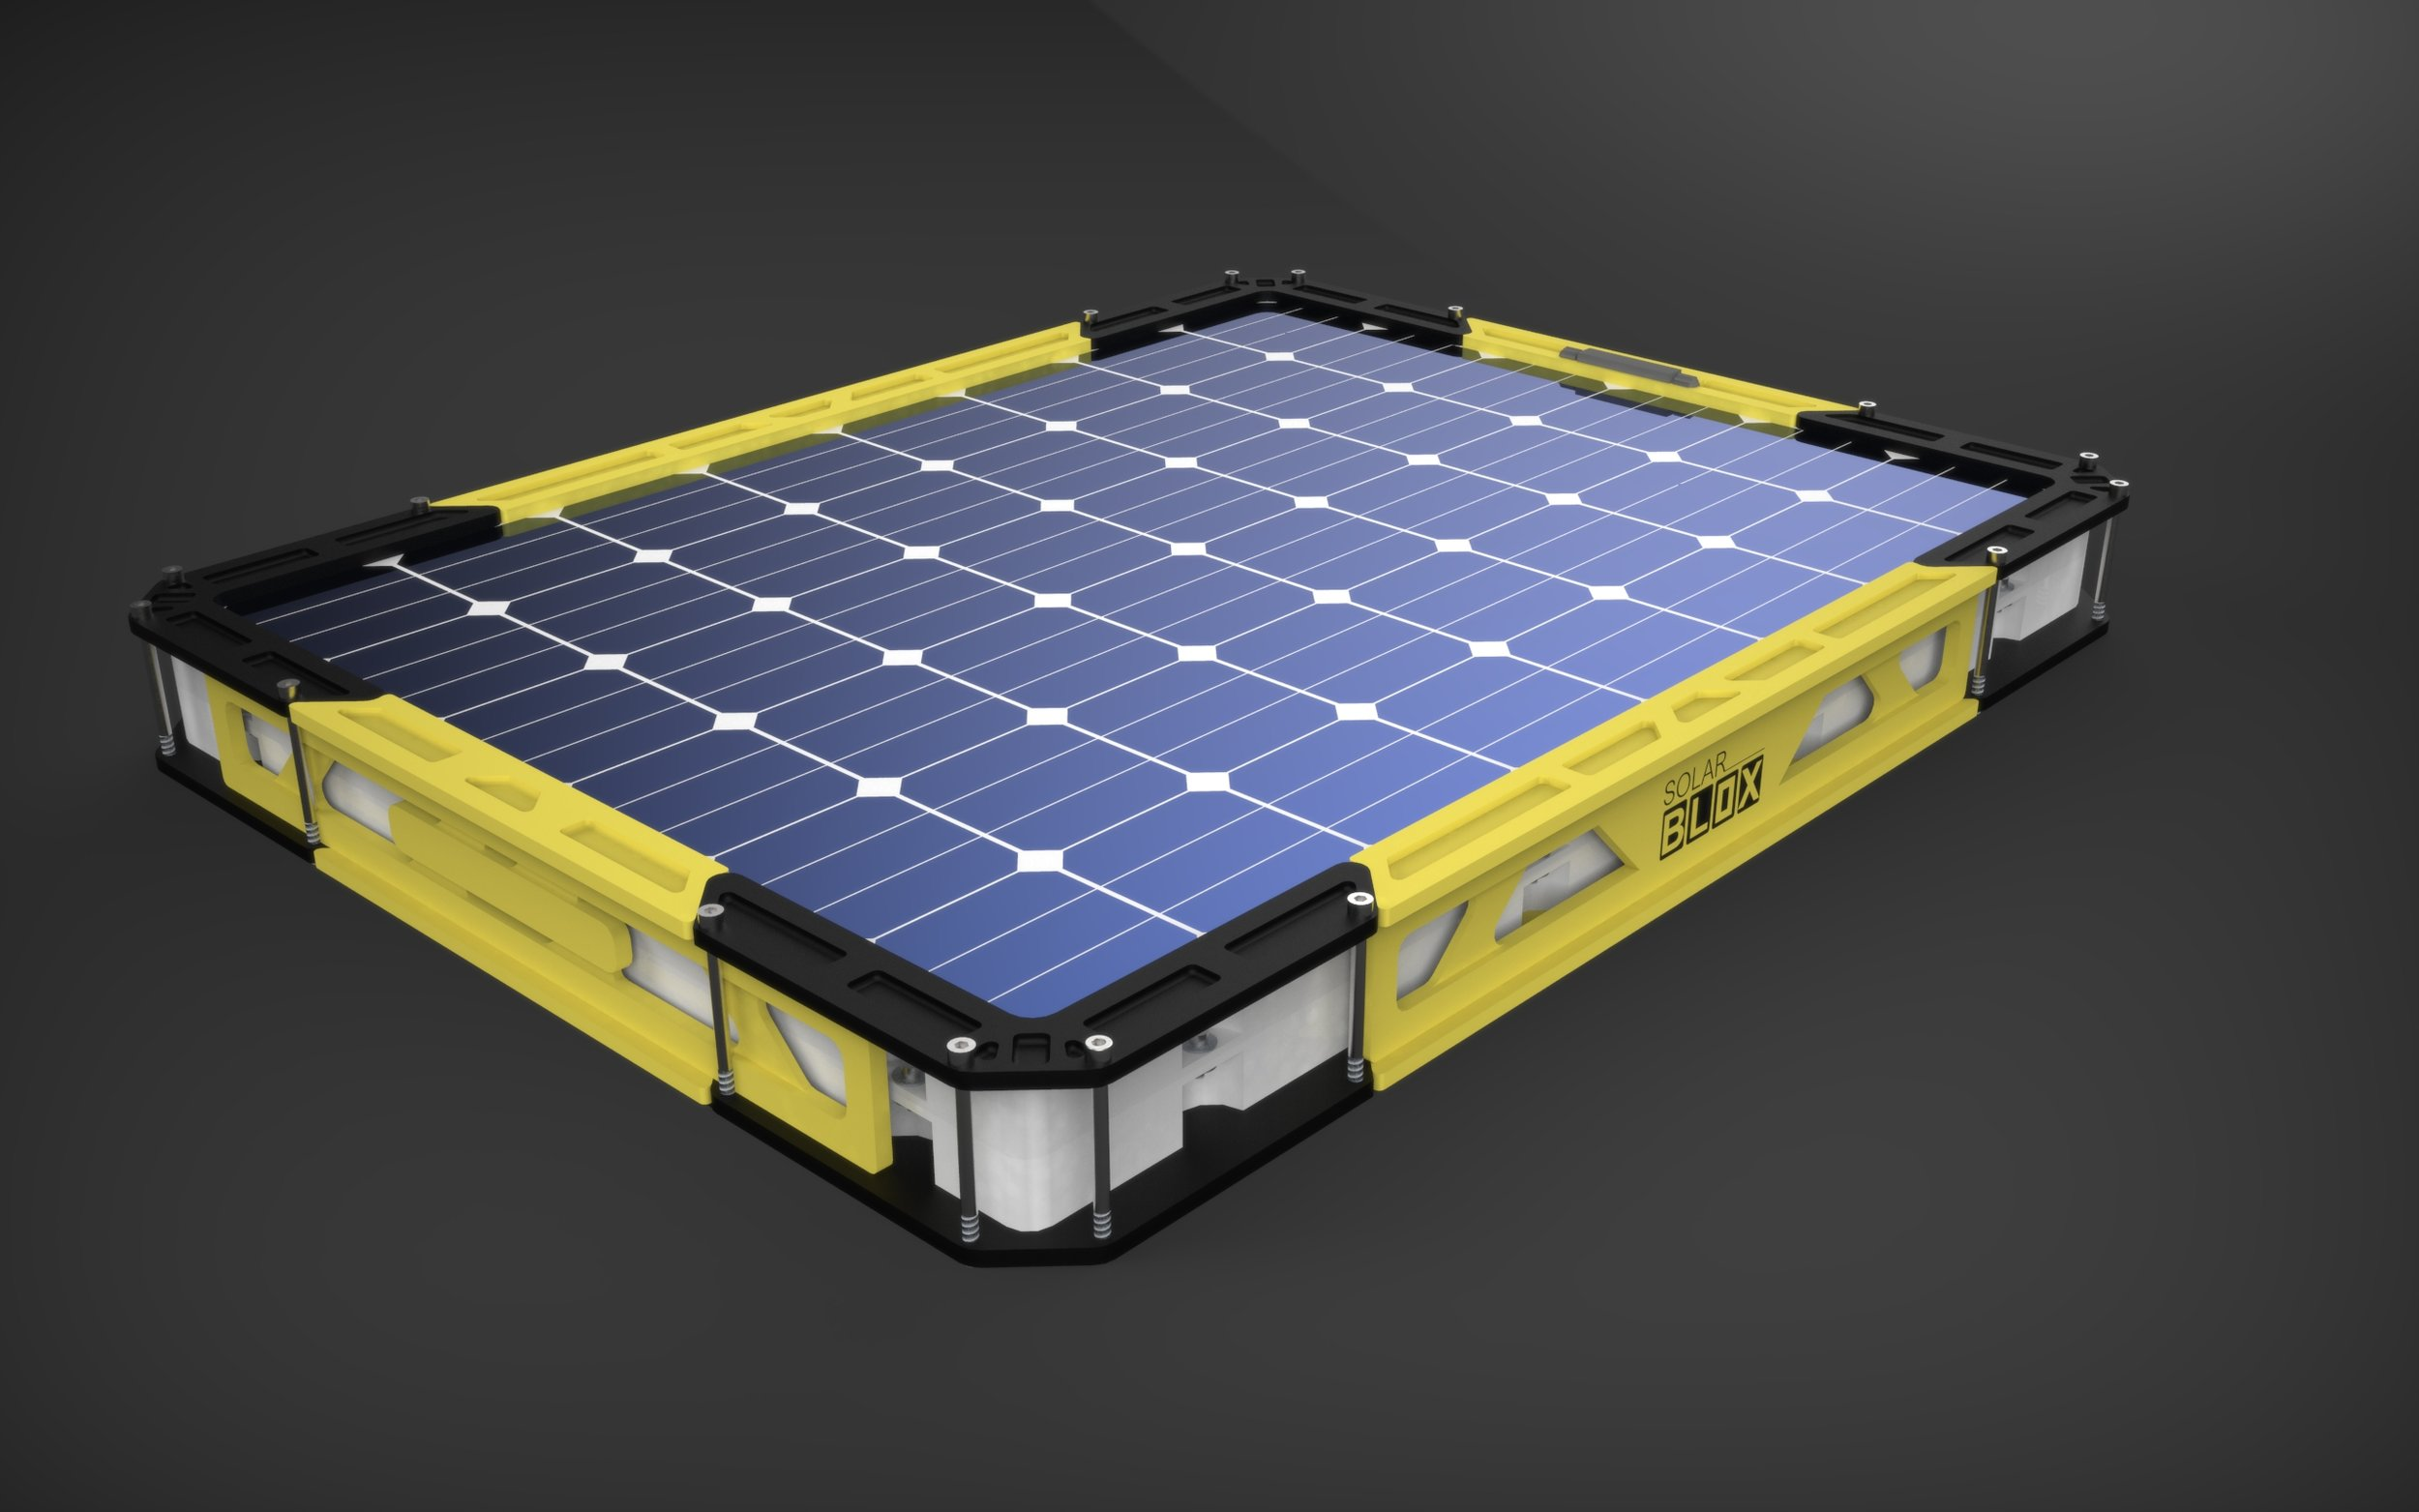 More blox more power - An entire Solar Generation micro-grid in a single product. Works day or night.